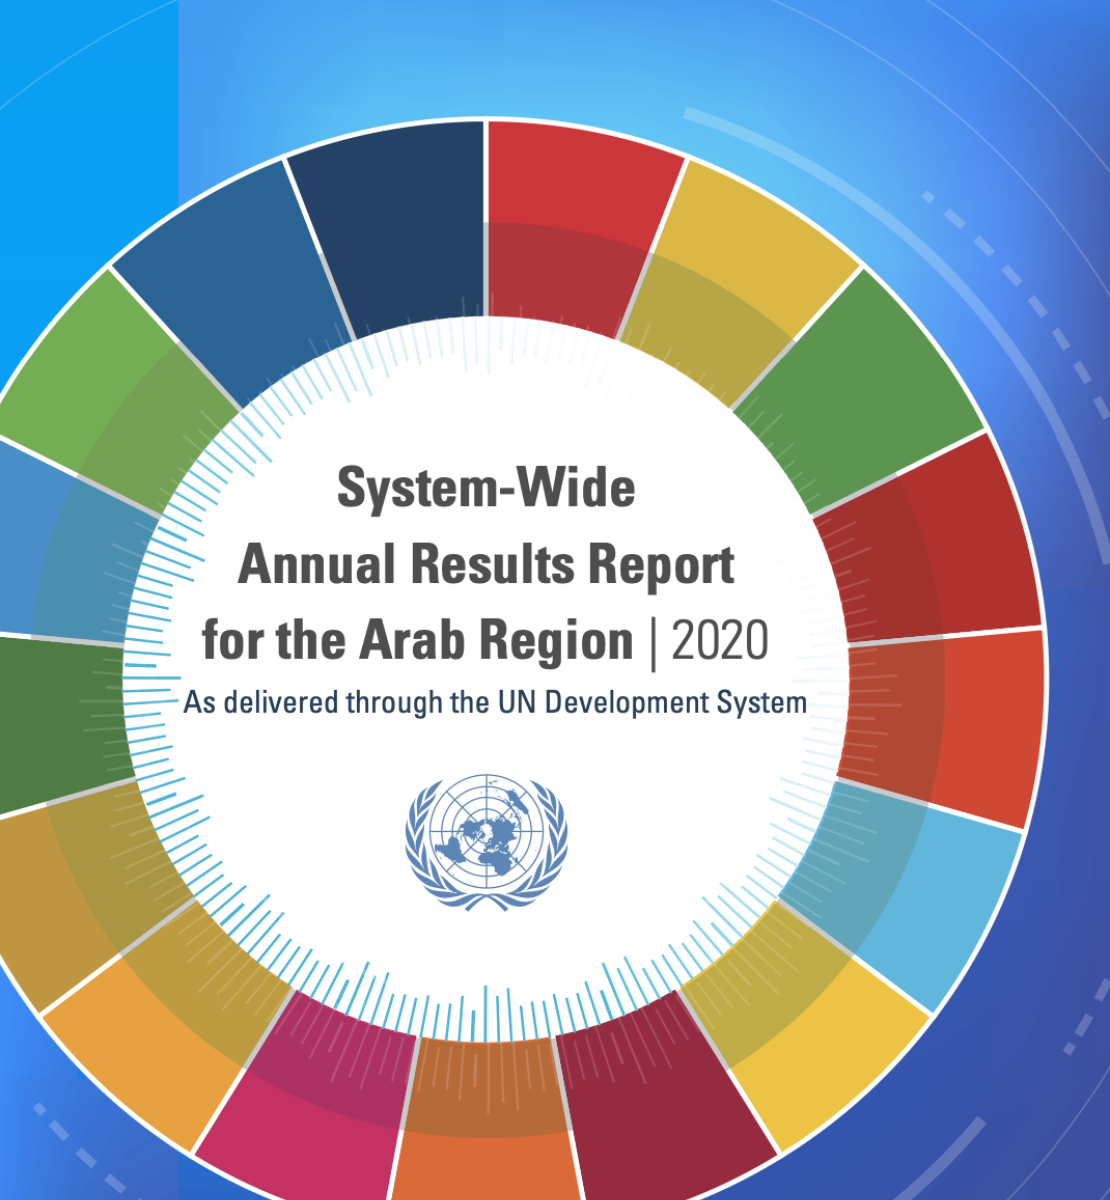 A colorful image of the cover for the Annual Report and the United Nations Logo